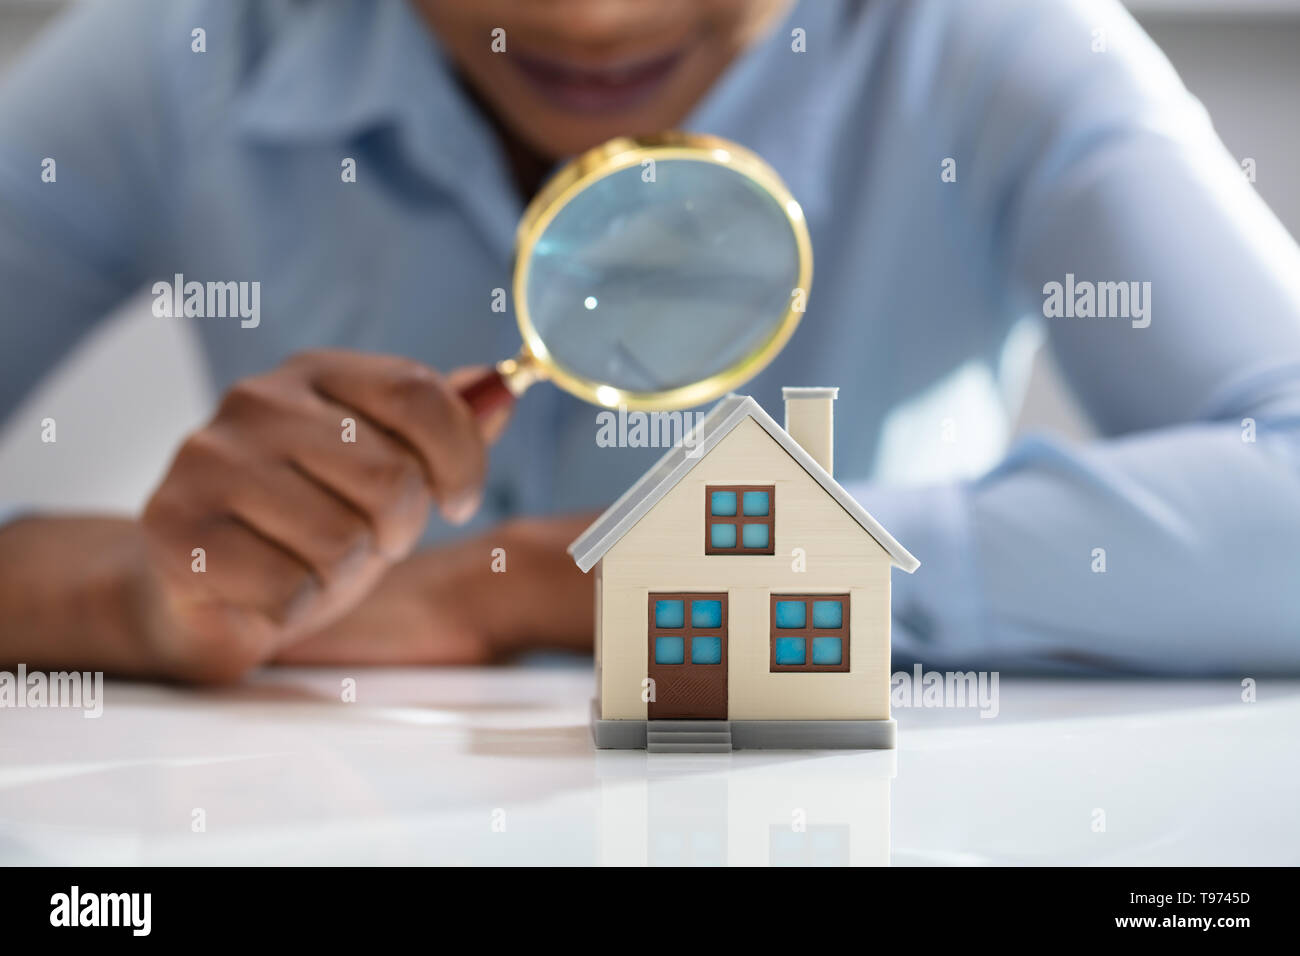 Close-up Of A Businesswoman's Hand Holding Magnifying Glass Over House Model Over Desk - Stock Image